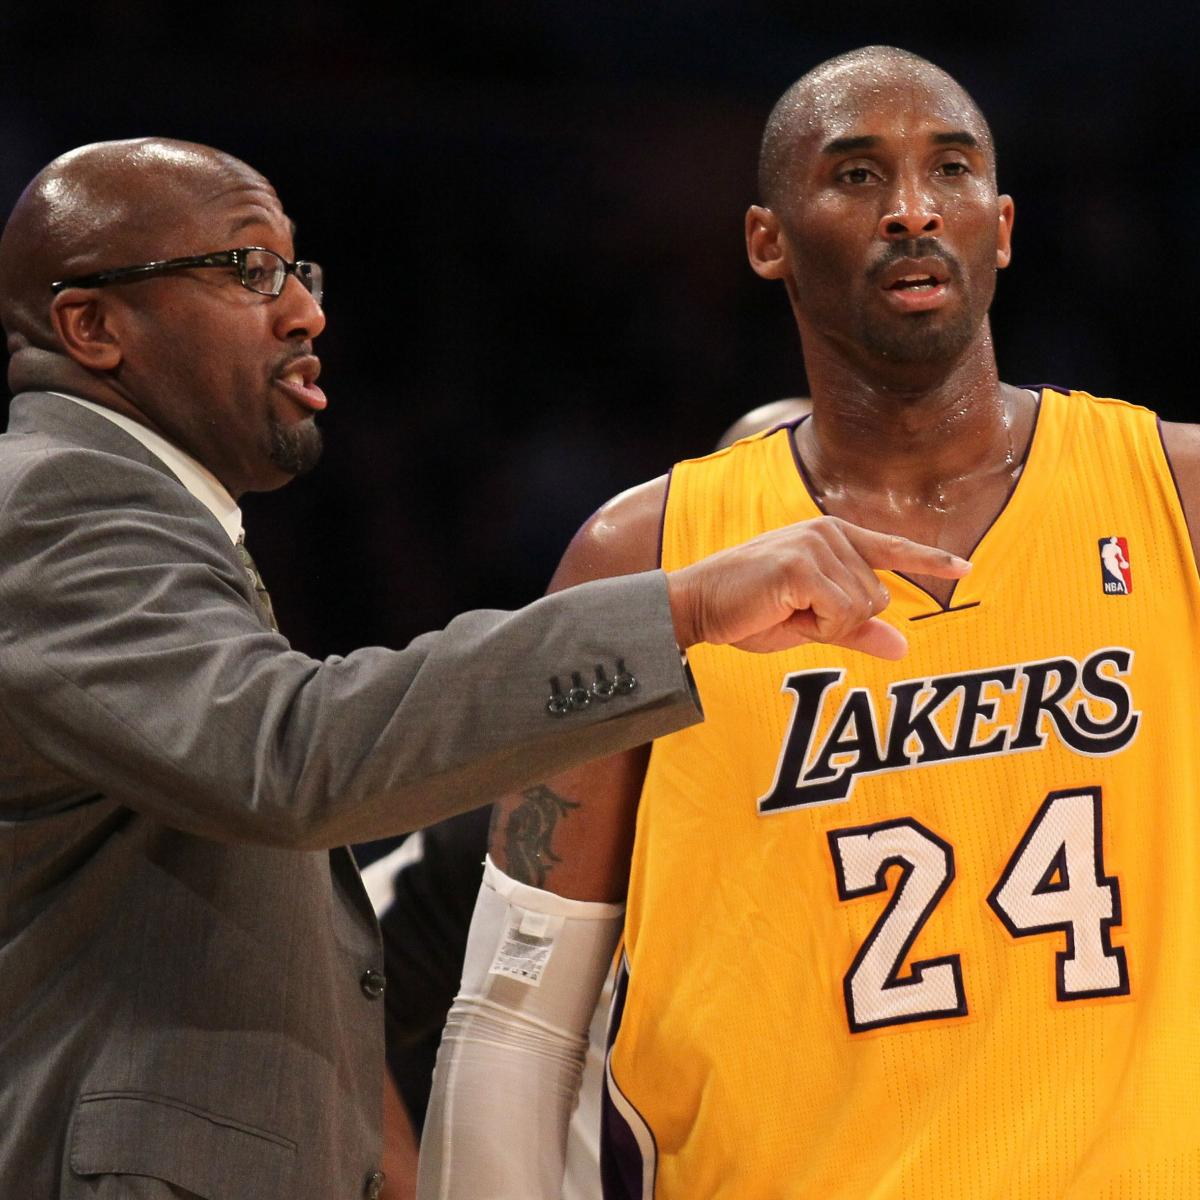 Kobe Bryant Benched: Lakers Star's Benching Is Being